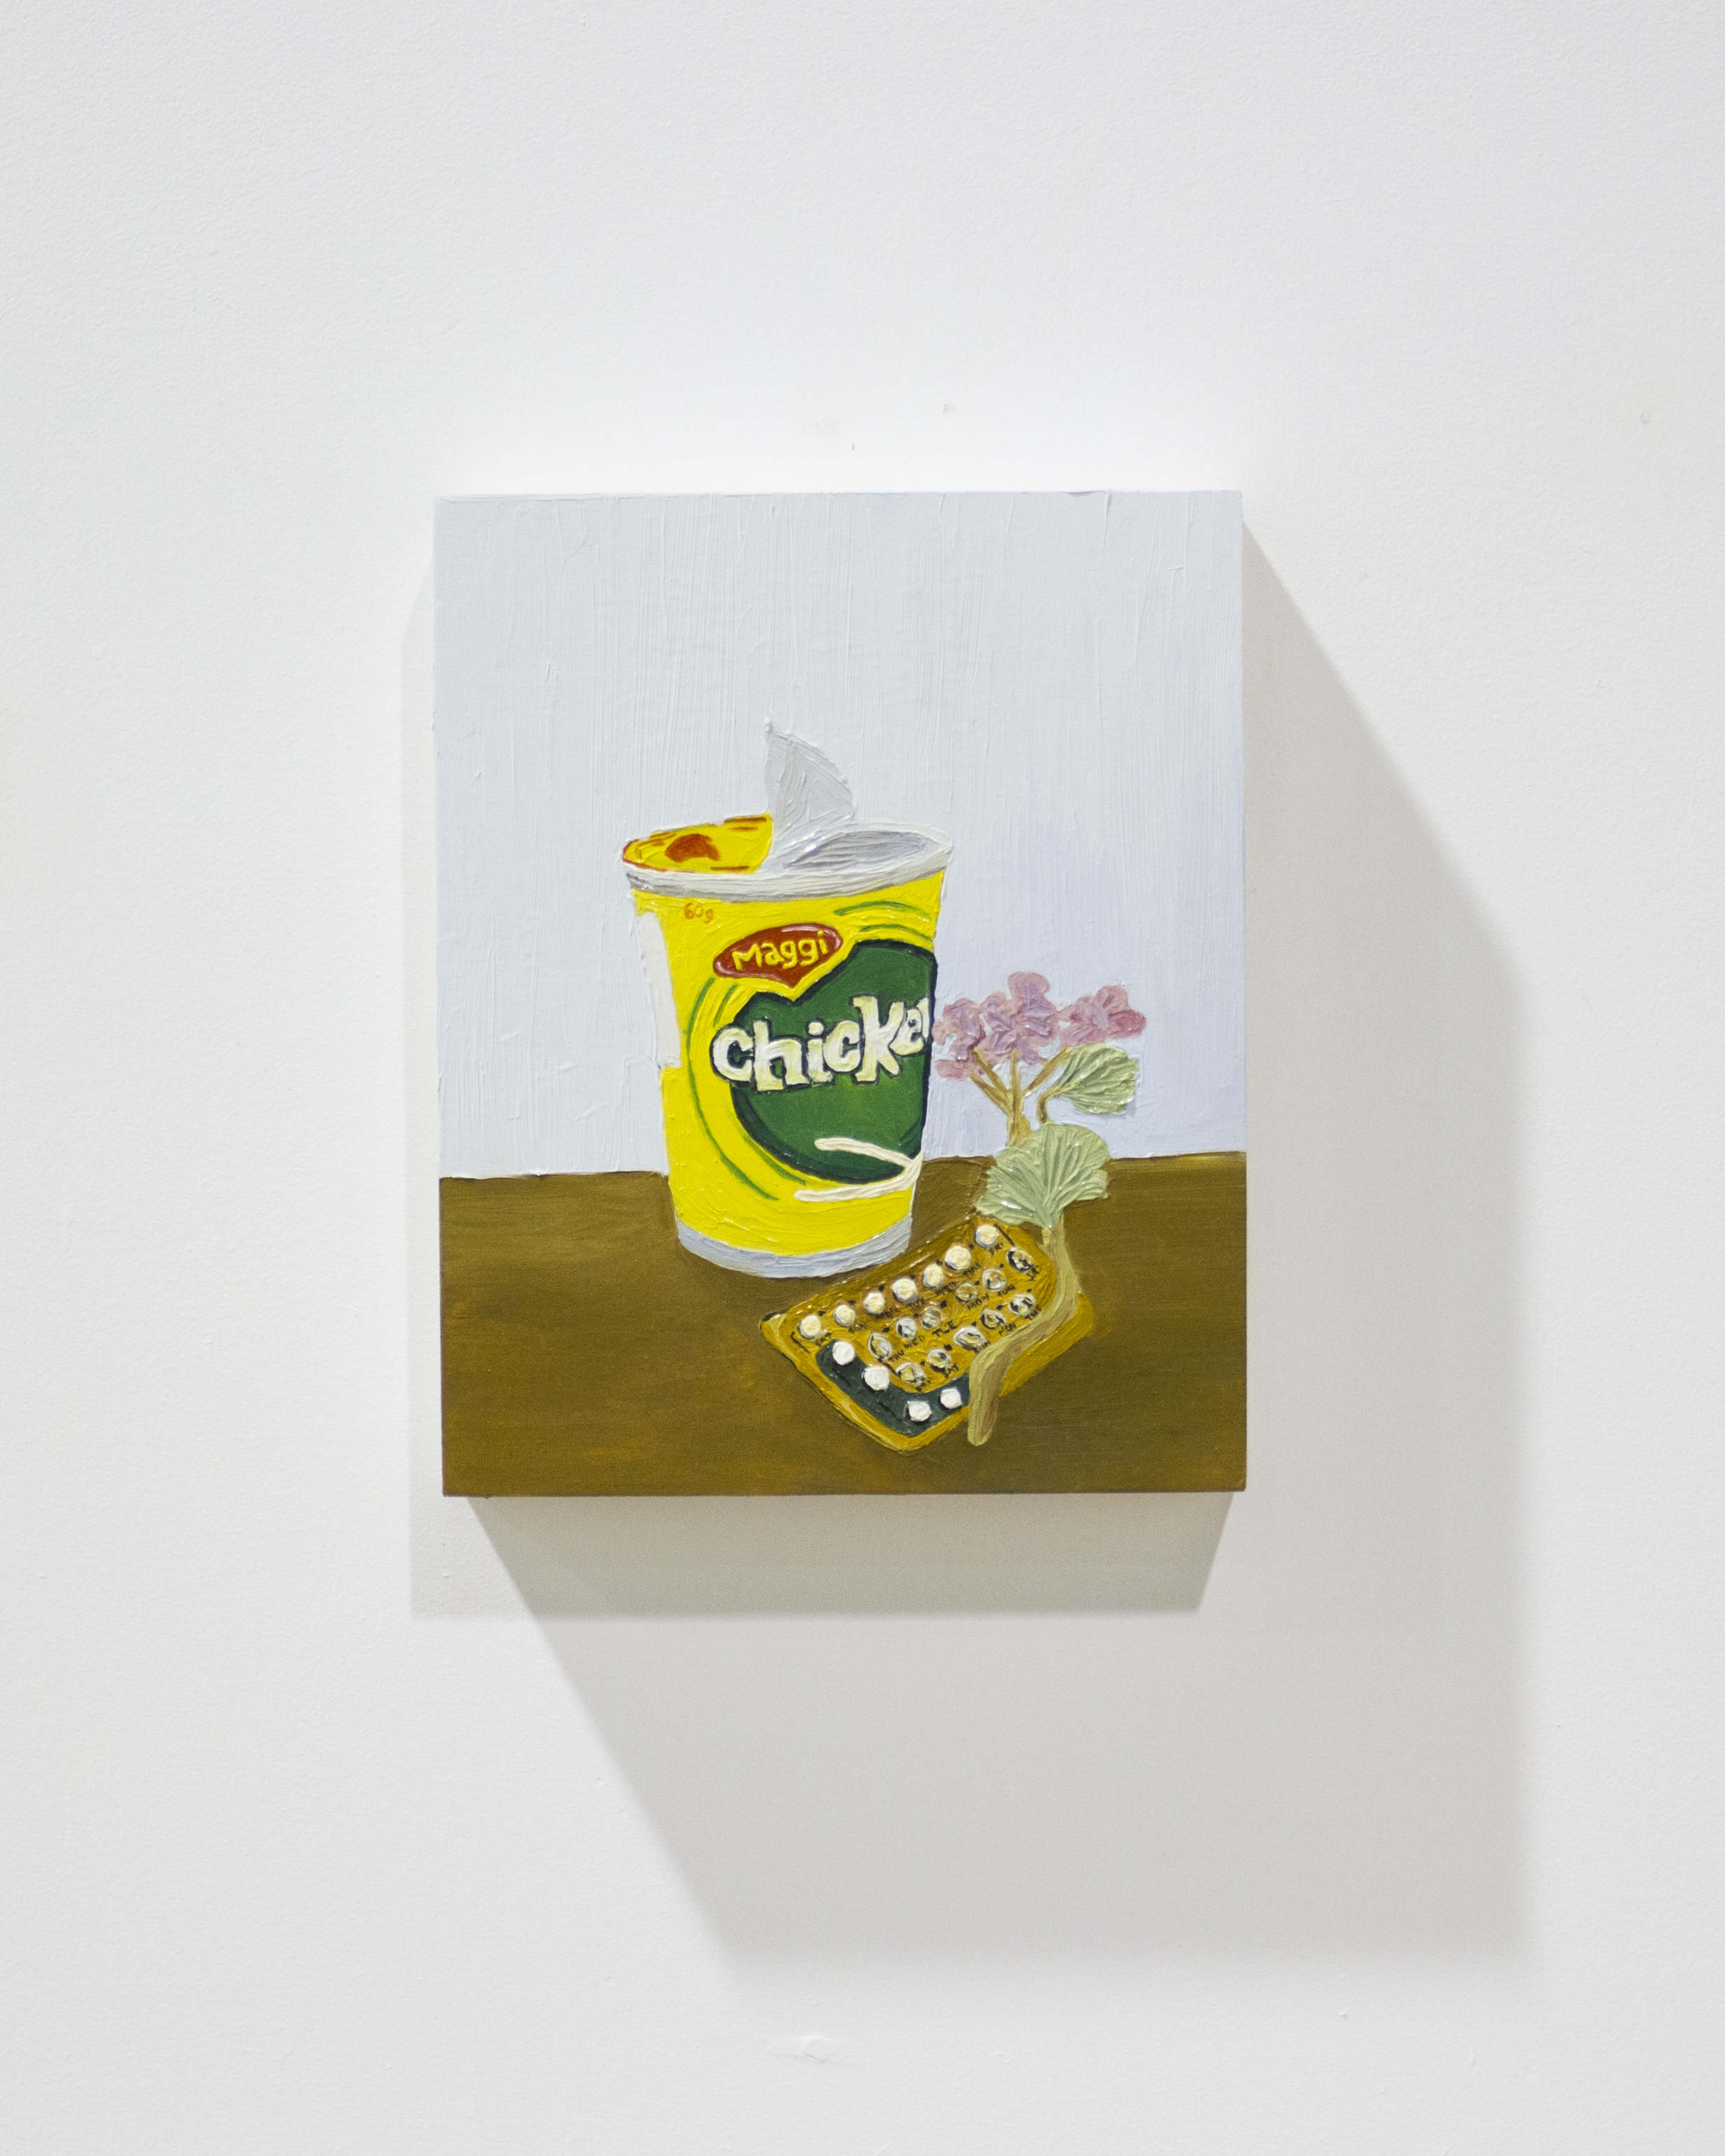 Dionne Hooyberg, Bedside Still Life, 2017. Oil on Board, 20 x 25cm. Photo Credit Paul Sutherland